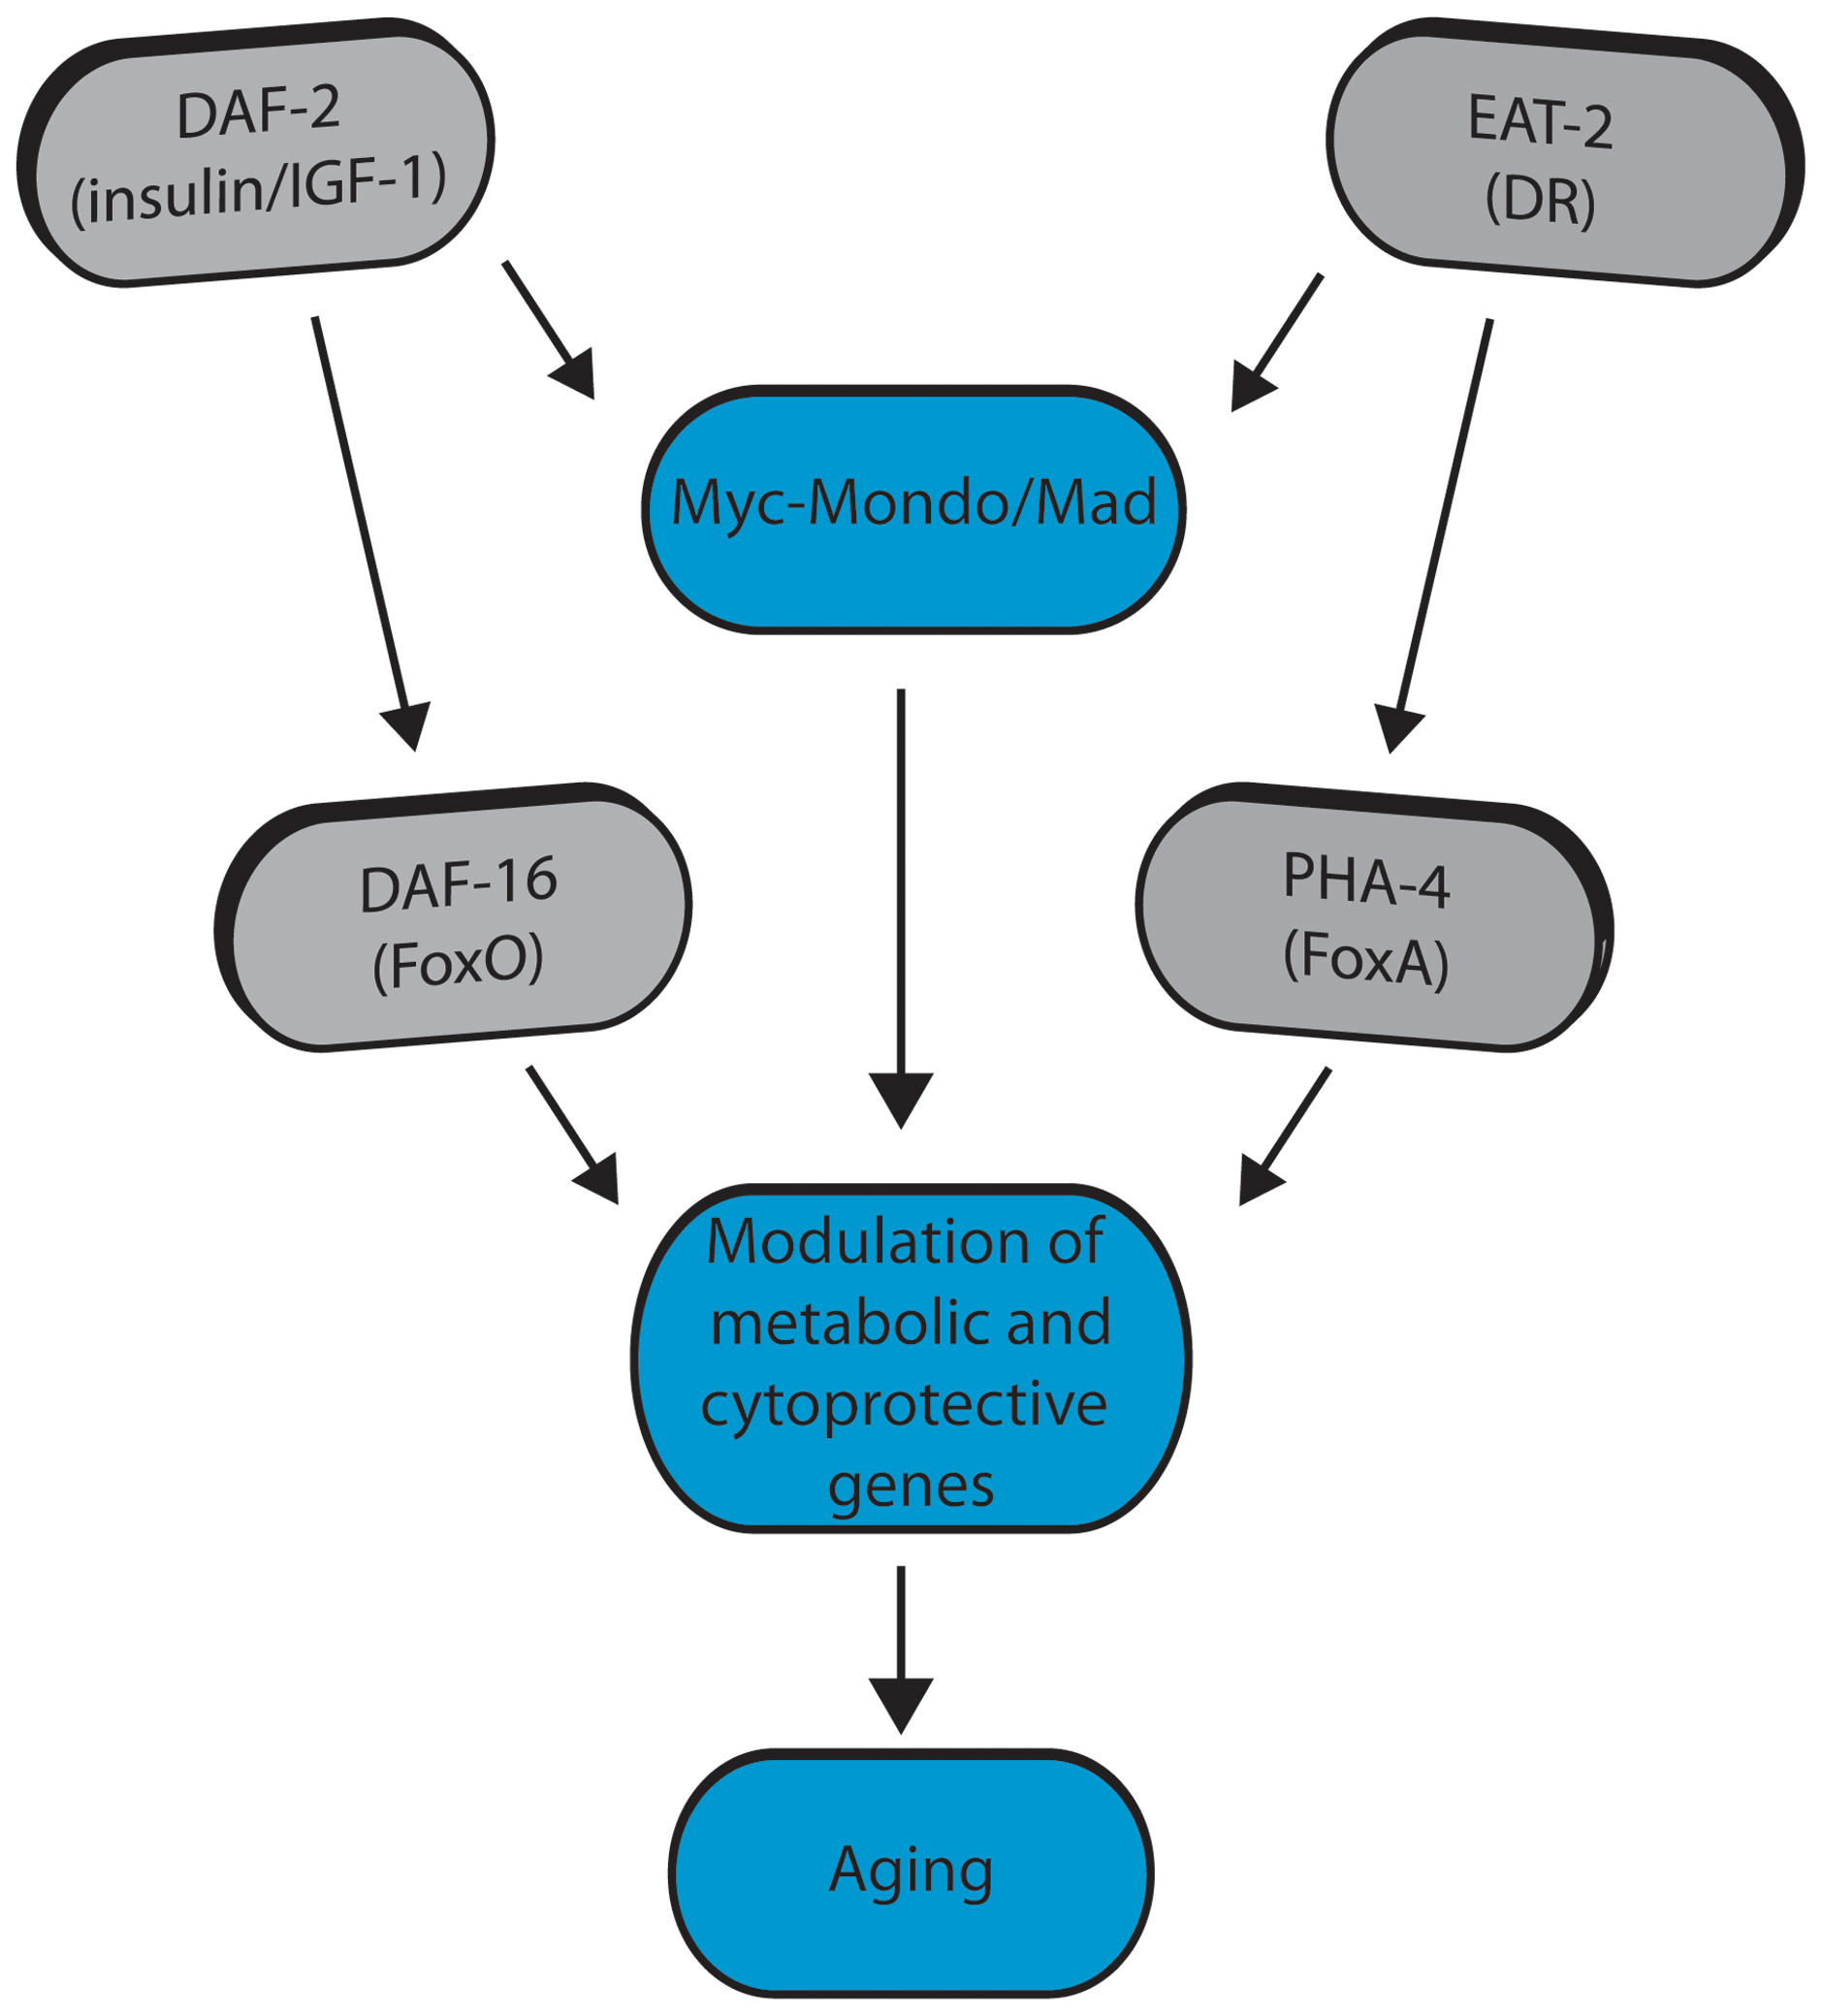 Model for Myc-Mondo/Mad transcription factors in longevity control under basal conditions the Myc-Mondo activation complex (MML-1:MXL-2) is largely inactive, and transcription of genes encoding functions related to aging is limited by the Mad transcriptional repression complex (MDL-1:MXL-1).